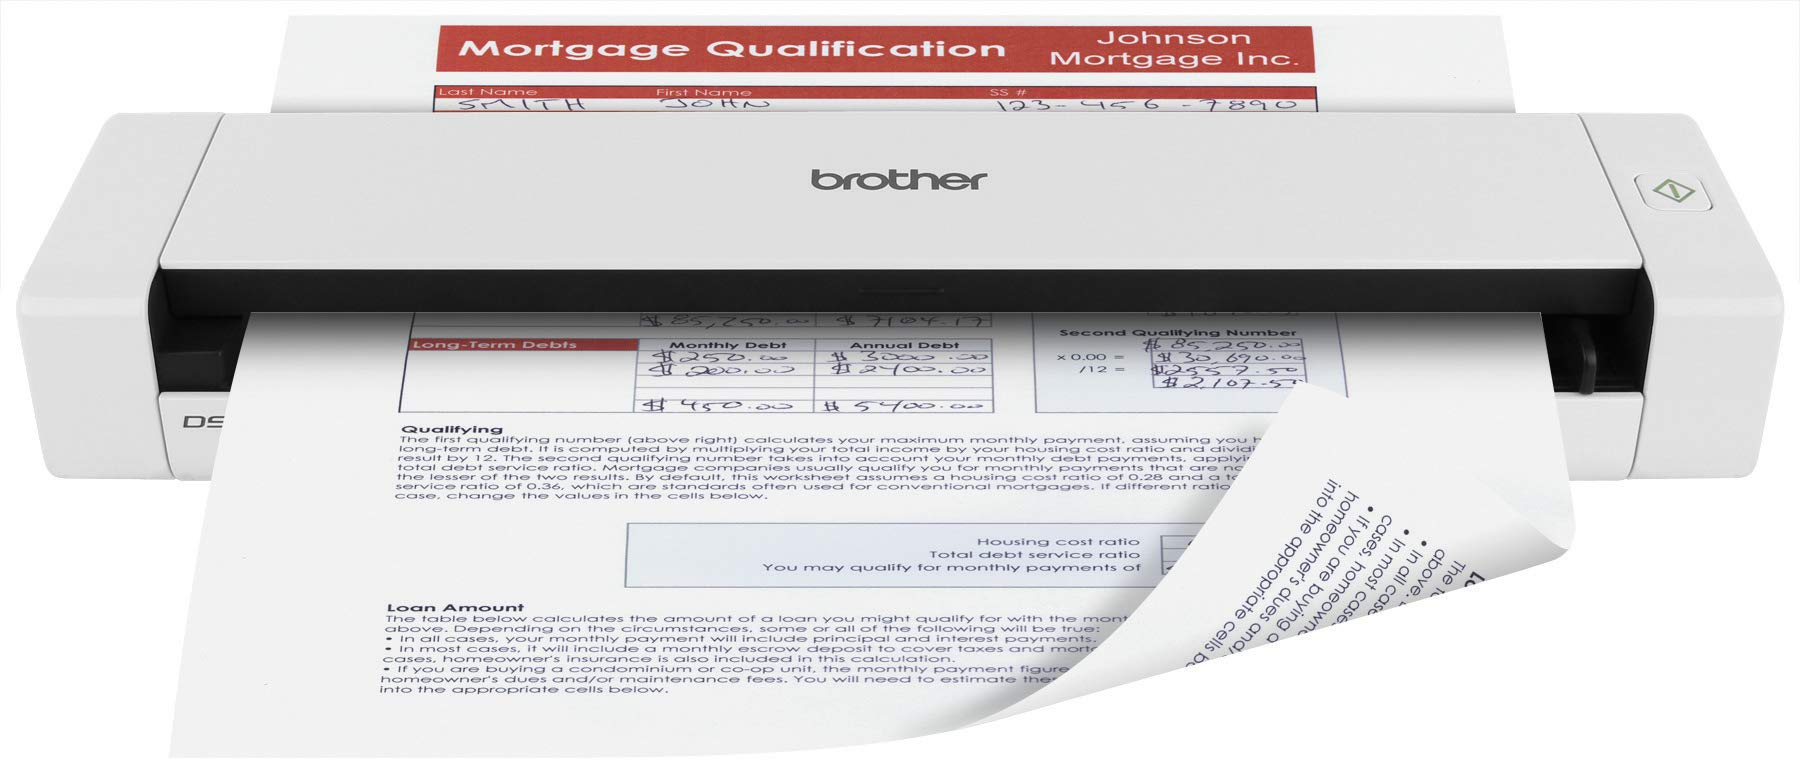 Brother Mobile Color Page Scanner, DS-720D, Fast Scanning, Compact and Lightweight, Duplex Scanning by Brother